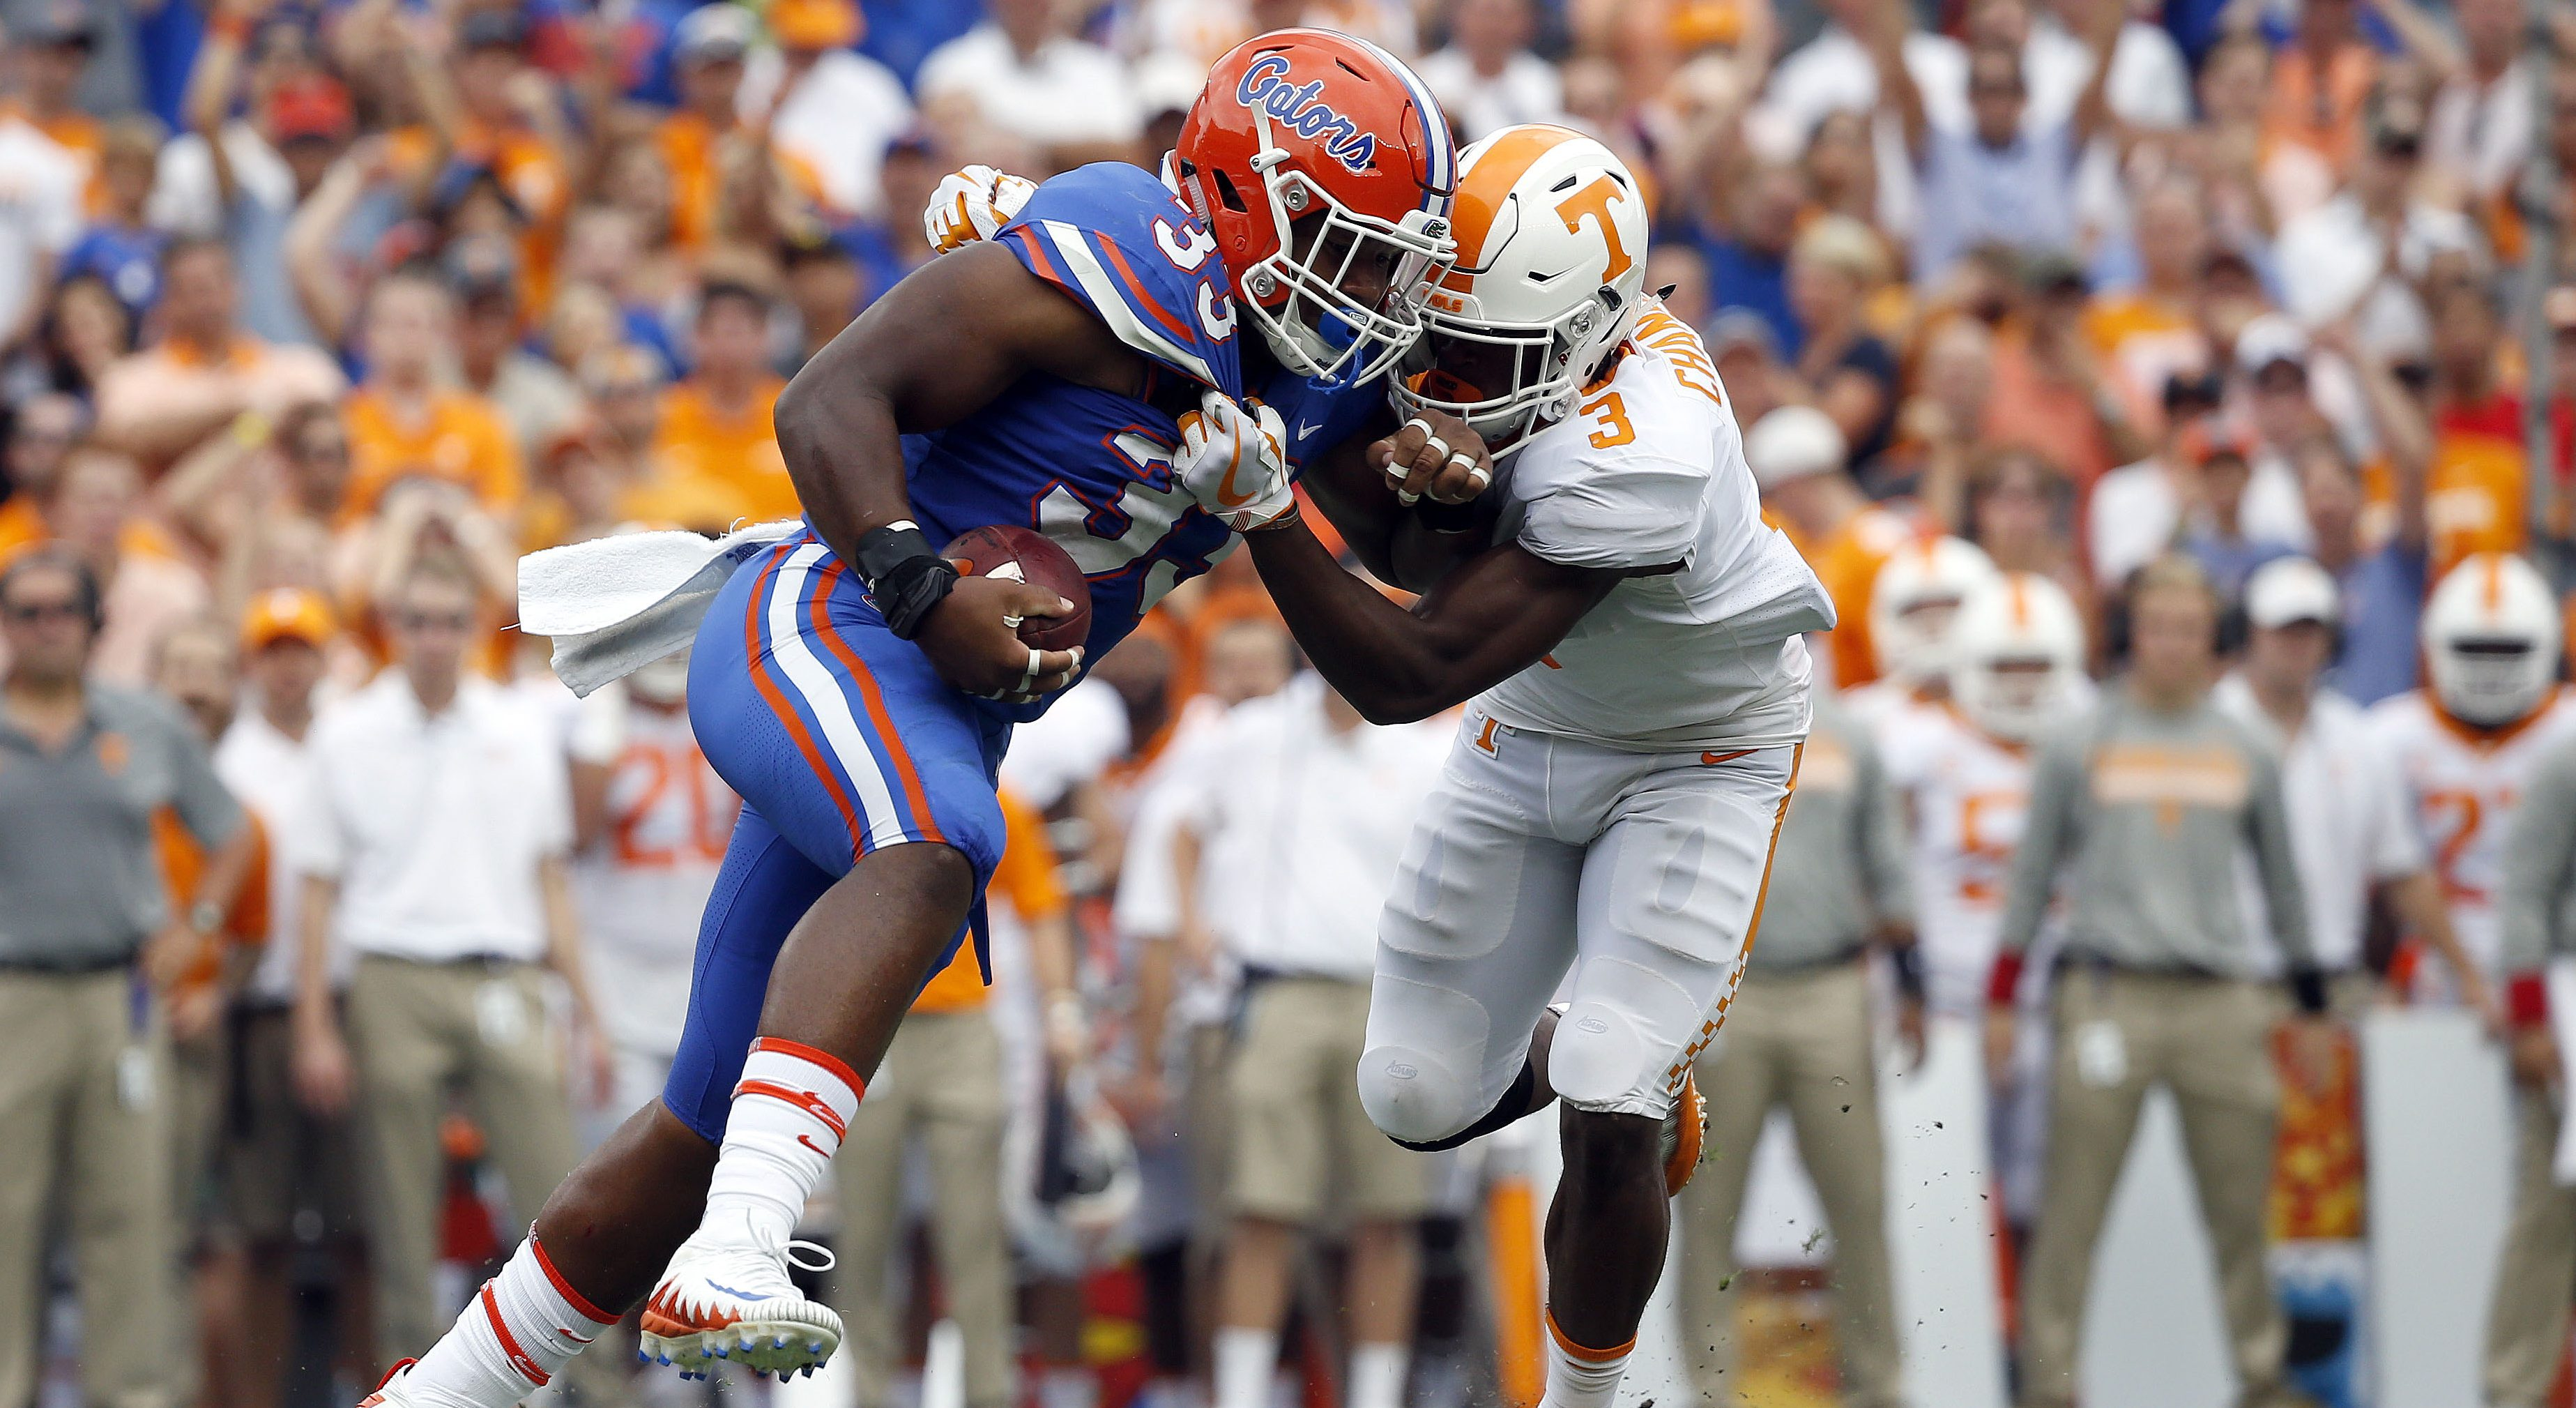 Gator LB Reese Addresses State of the Defense as LSU Looms - ESPN ...